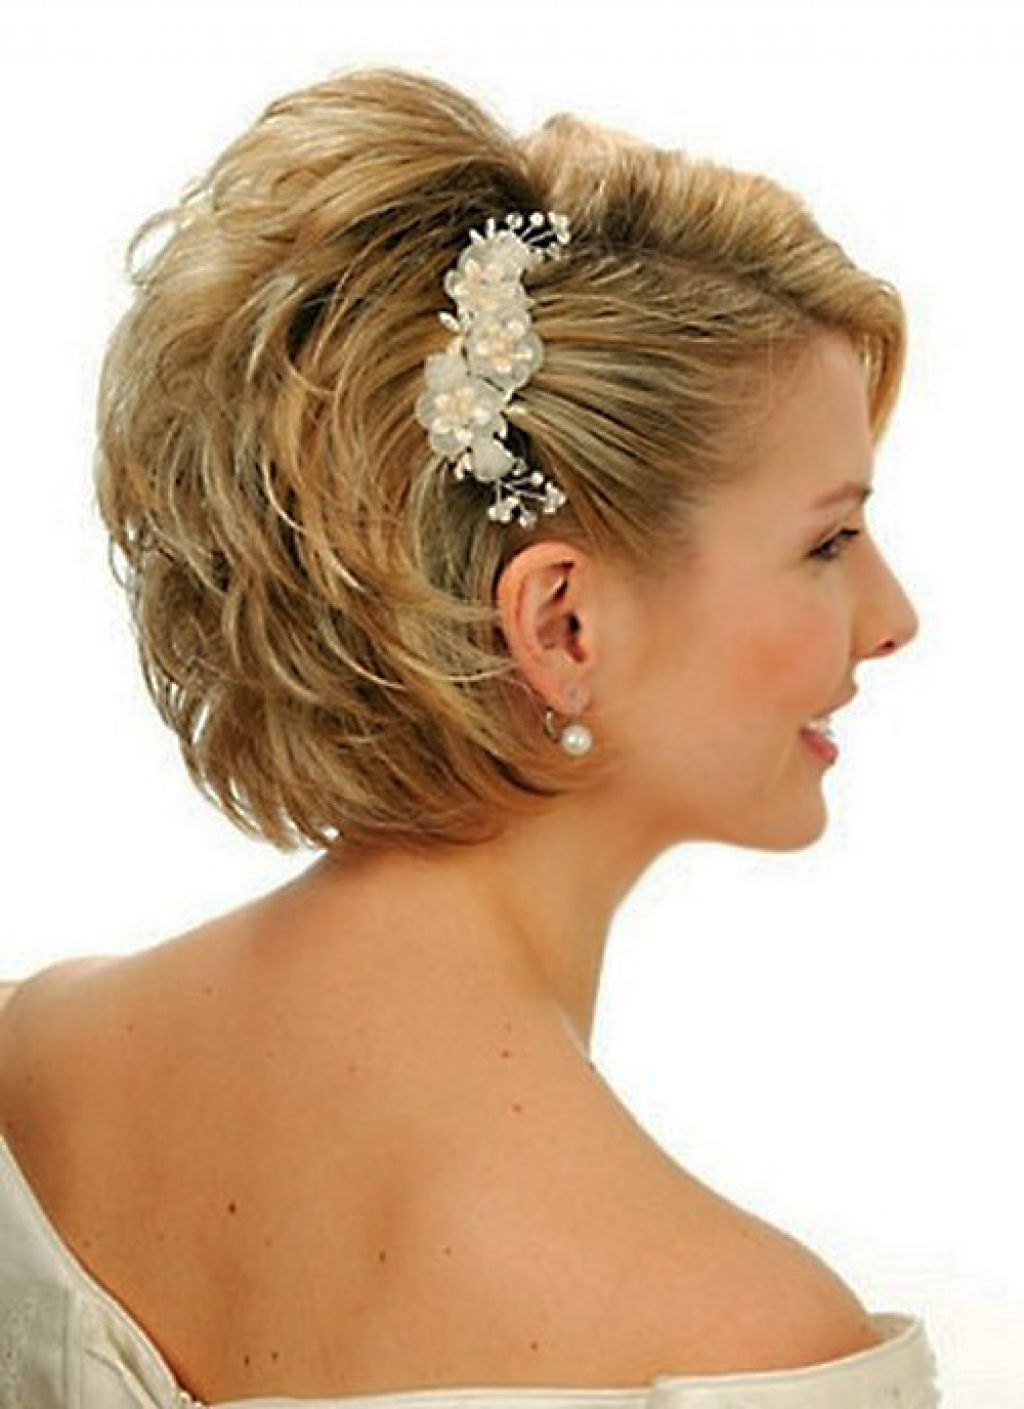 25 Most Favorite Wedding Hairstyles For Short Hair – The Xerxes Regarding Hairstyles For Short Hair For Wedding (View 13 of 25)